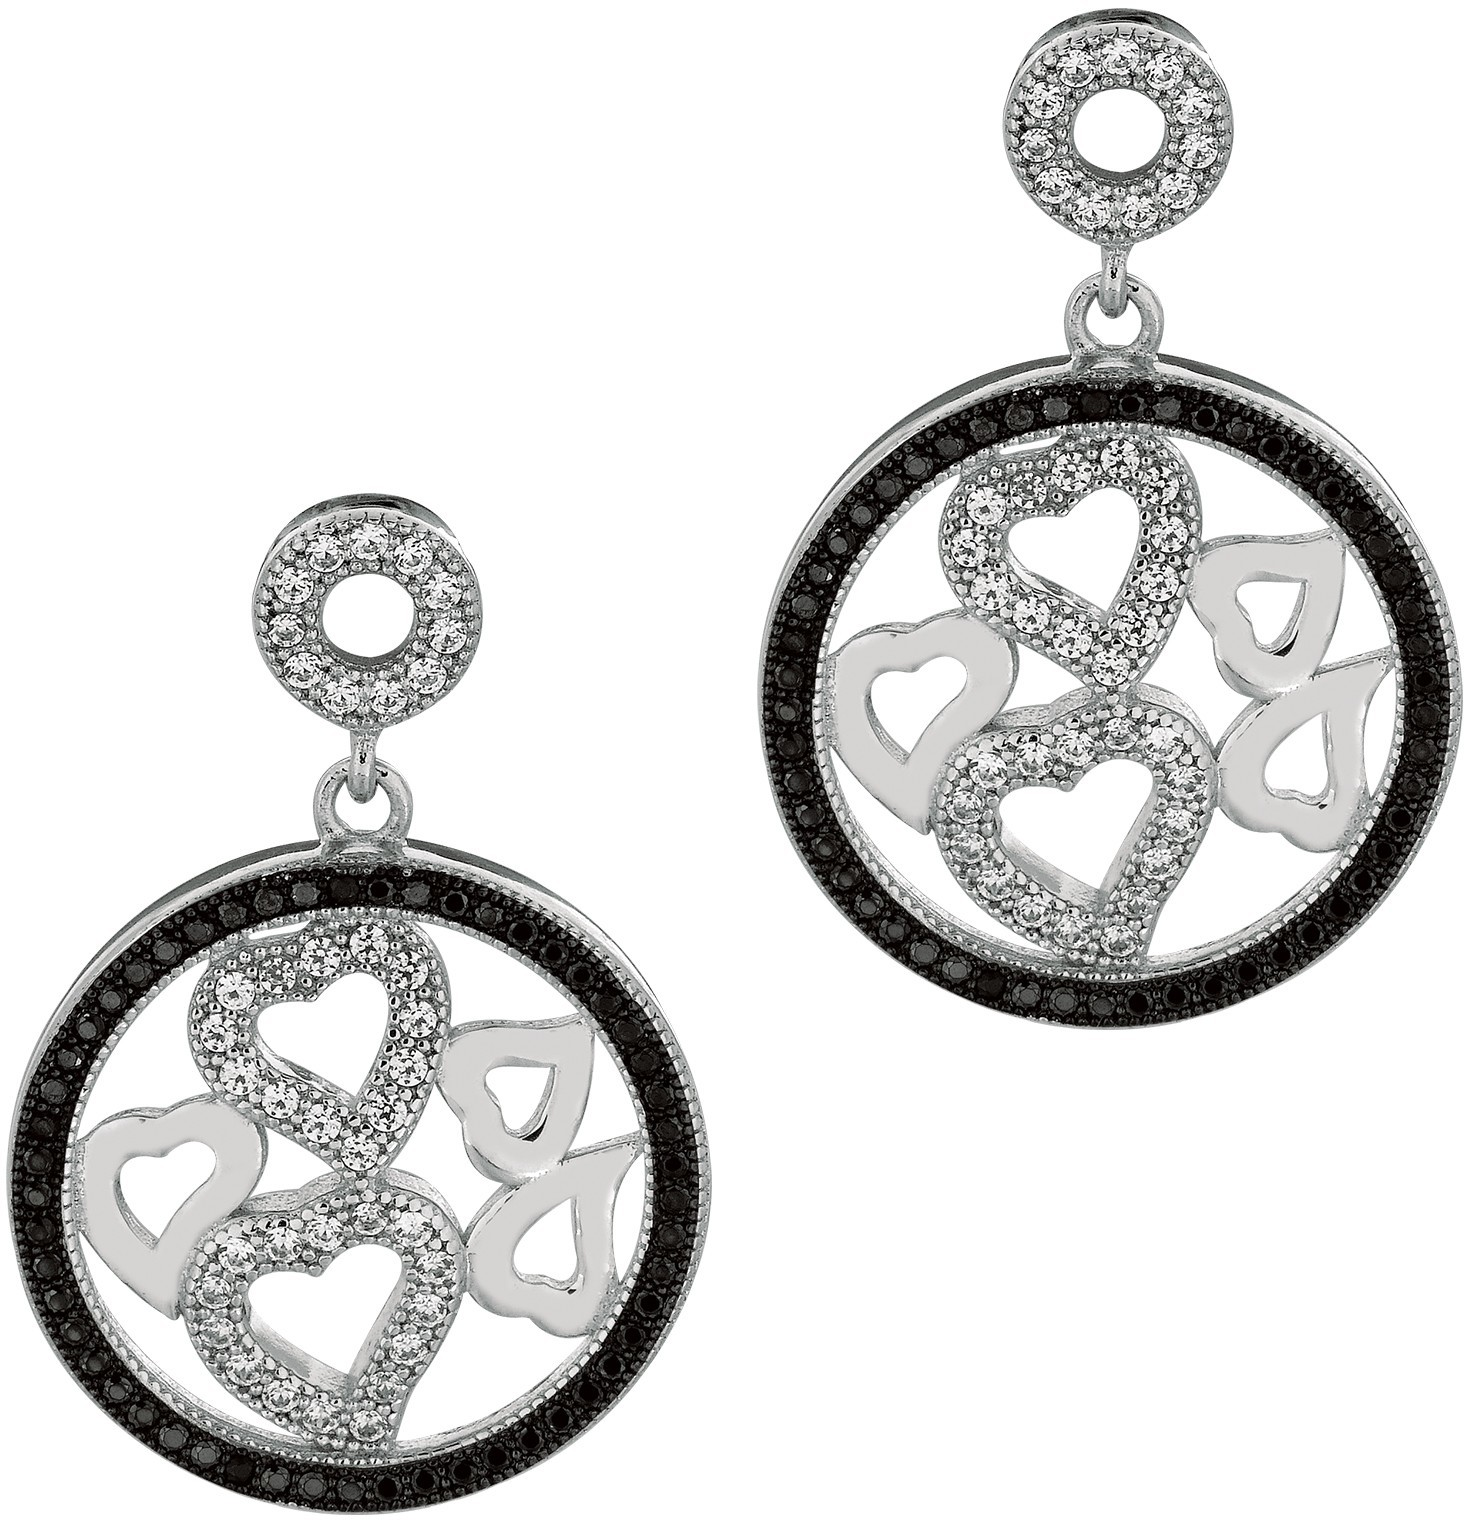 Silver Rhodium Plated Shiny Round Drop Earrings w/ 5 Small Hearts In Center Clear & Black Cubic Zirconia (CZ) - DISCONTINUED